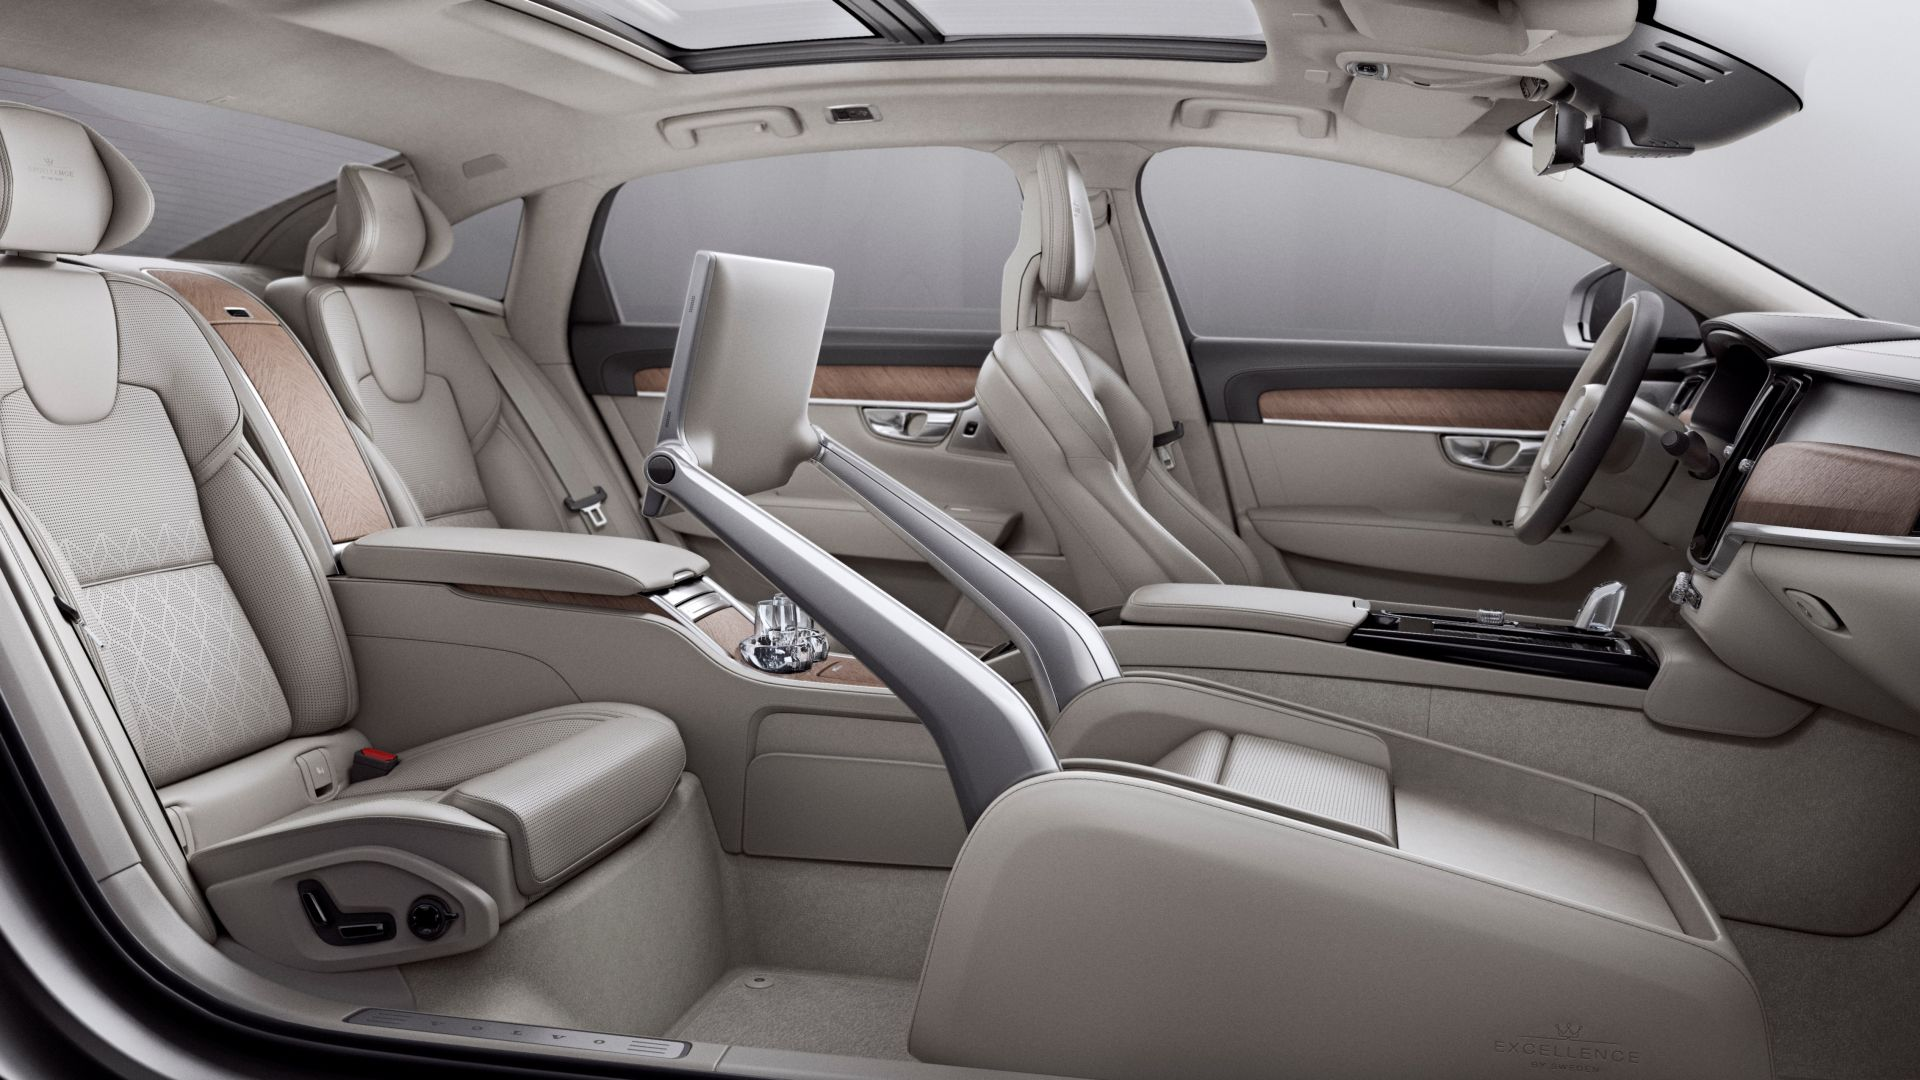 Wallpaper Volvo S90 Interior Luxury Cars Cars Amp Bikes 12456